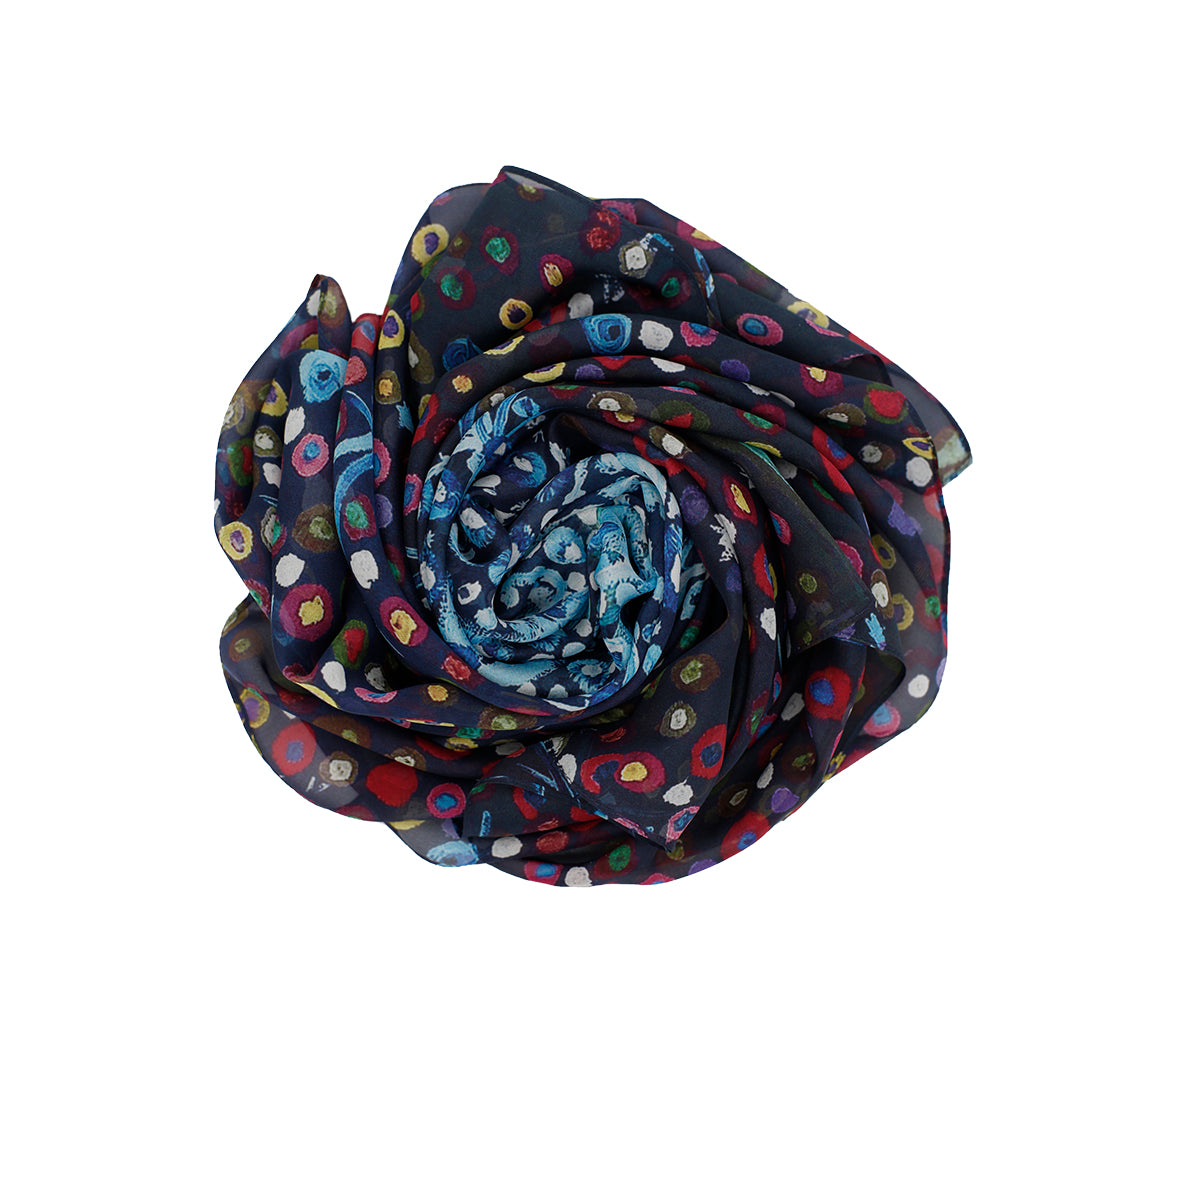 HIDDEN Silk Square Scarf Neckerchief Dandelion